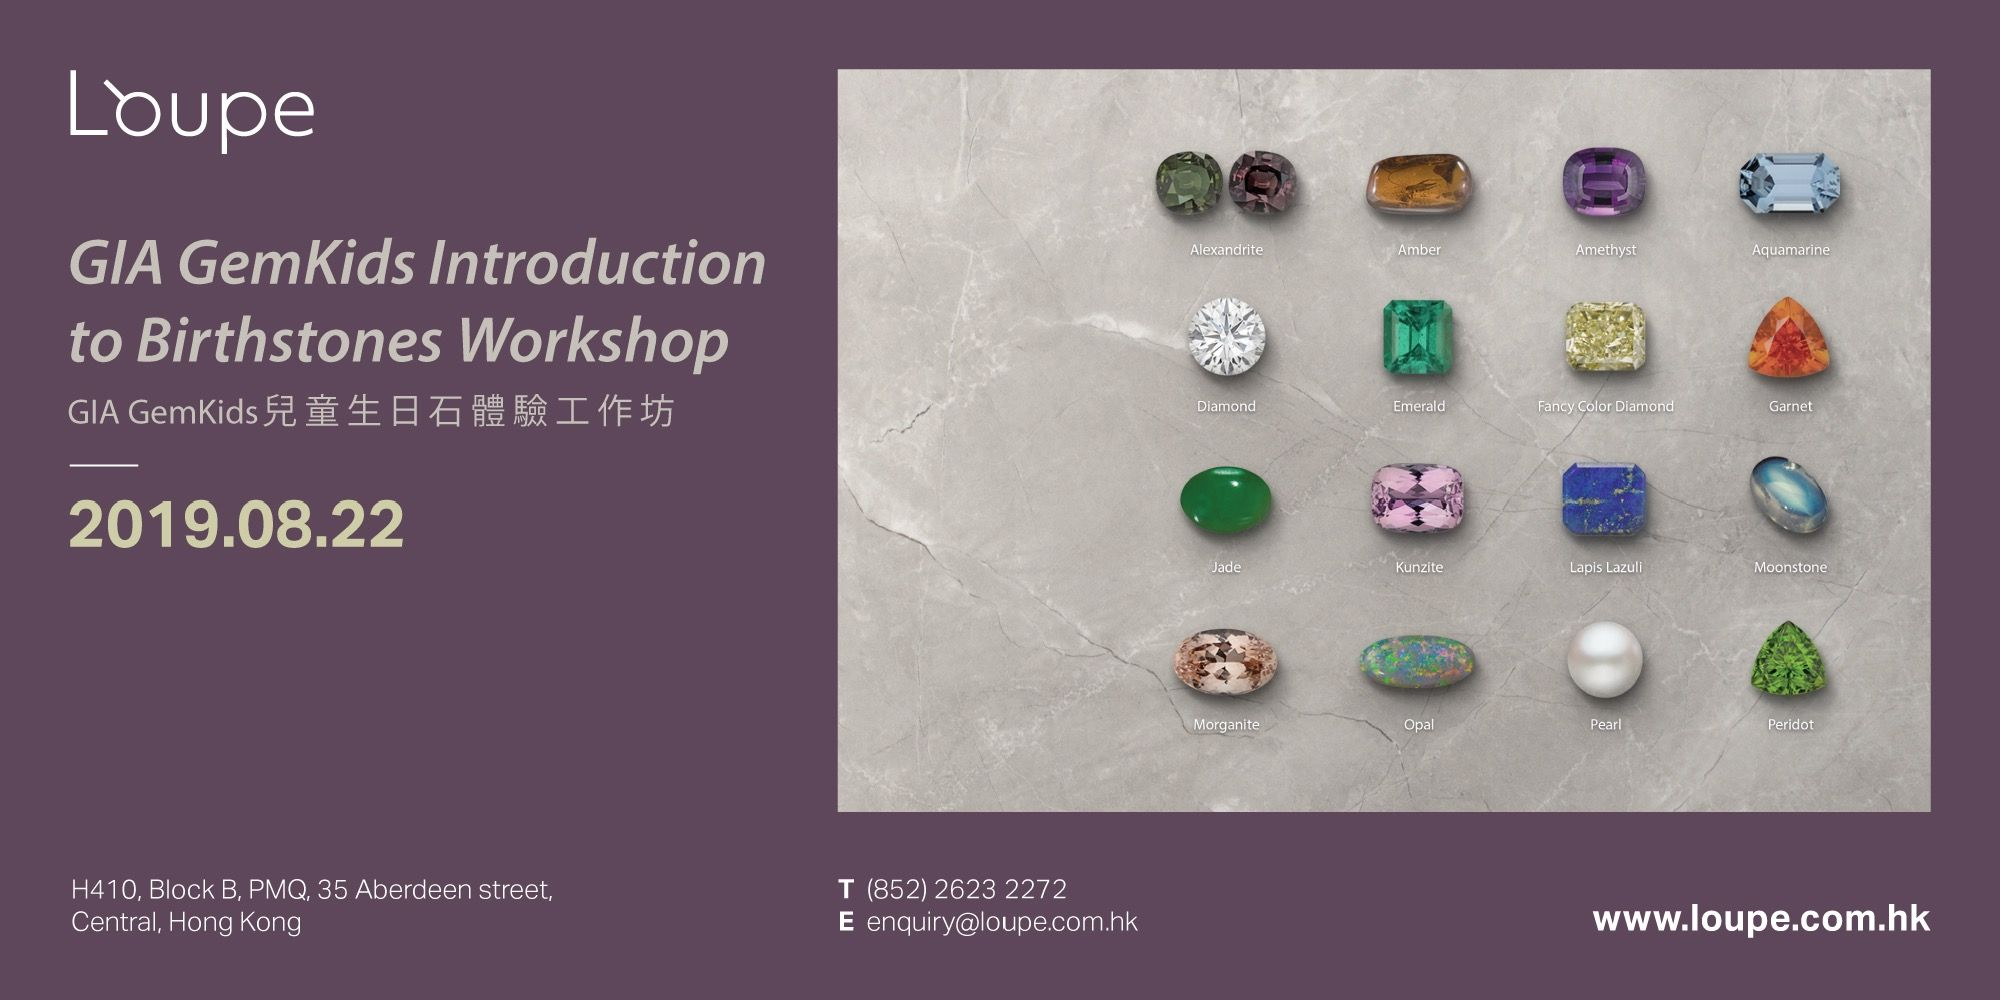 GIA GEMKIDS INTRODUCTION TO BIRTHSTONES WORKSHOP GIA GemKids兒童生日石體驗工作坊